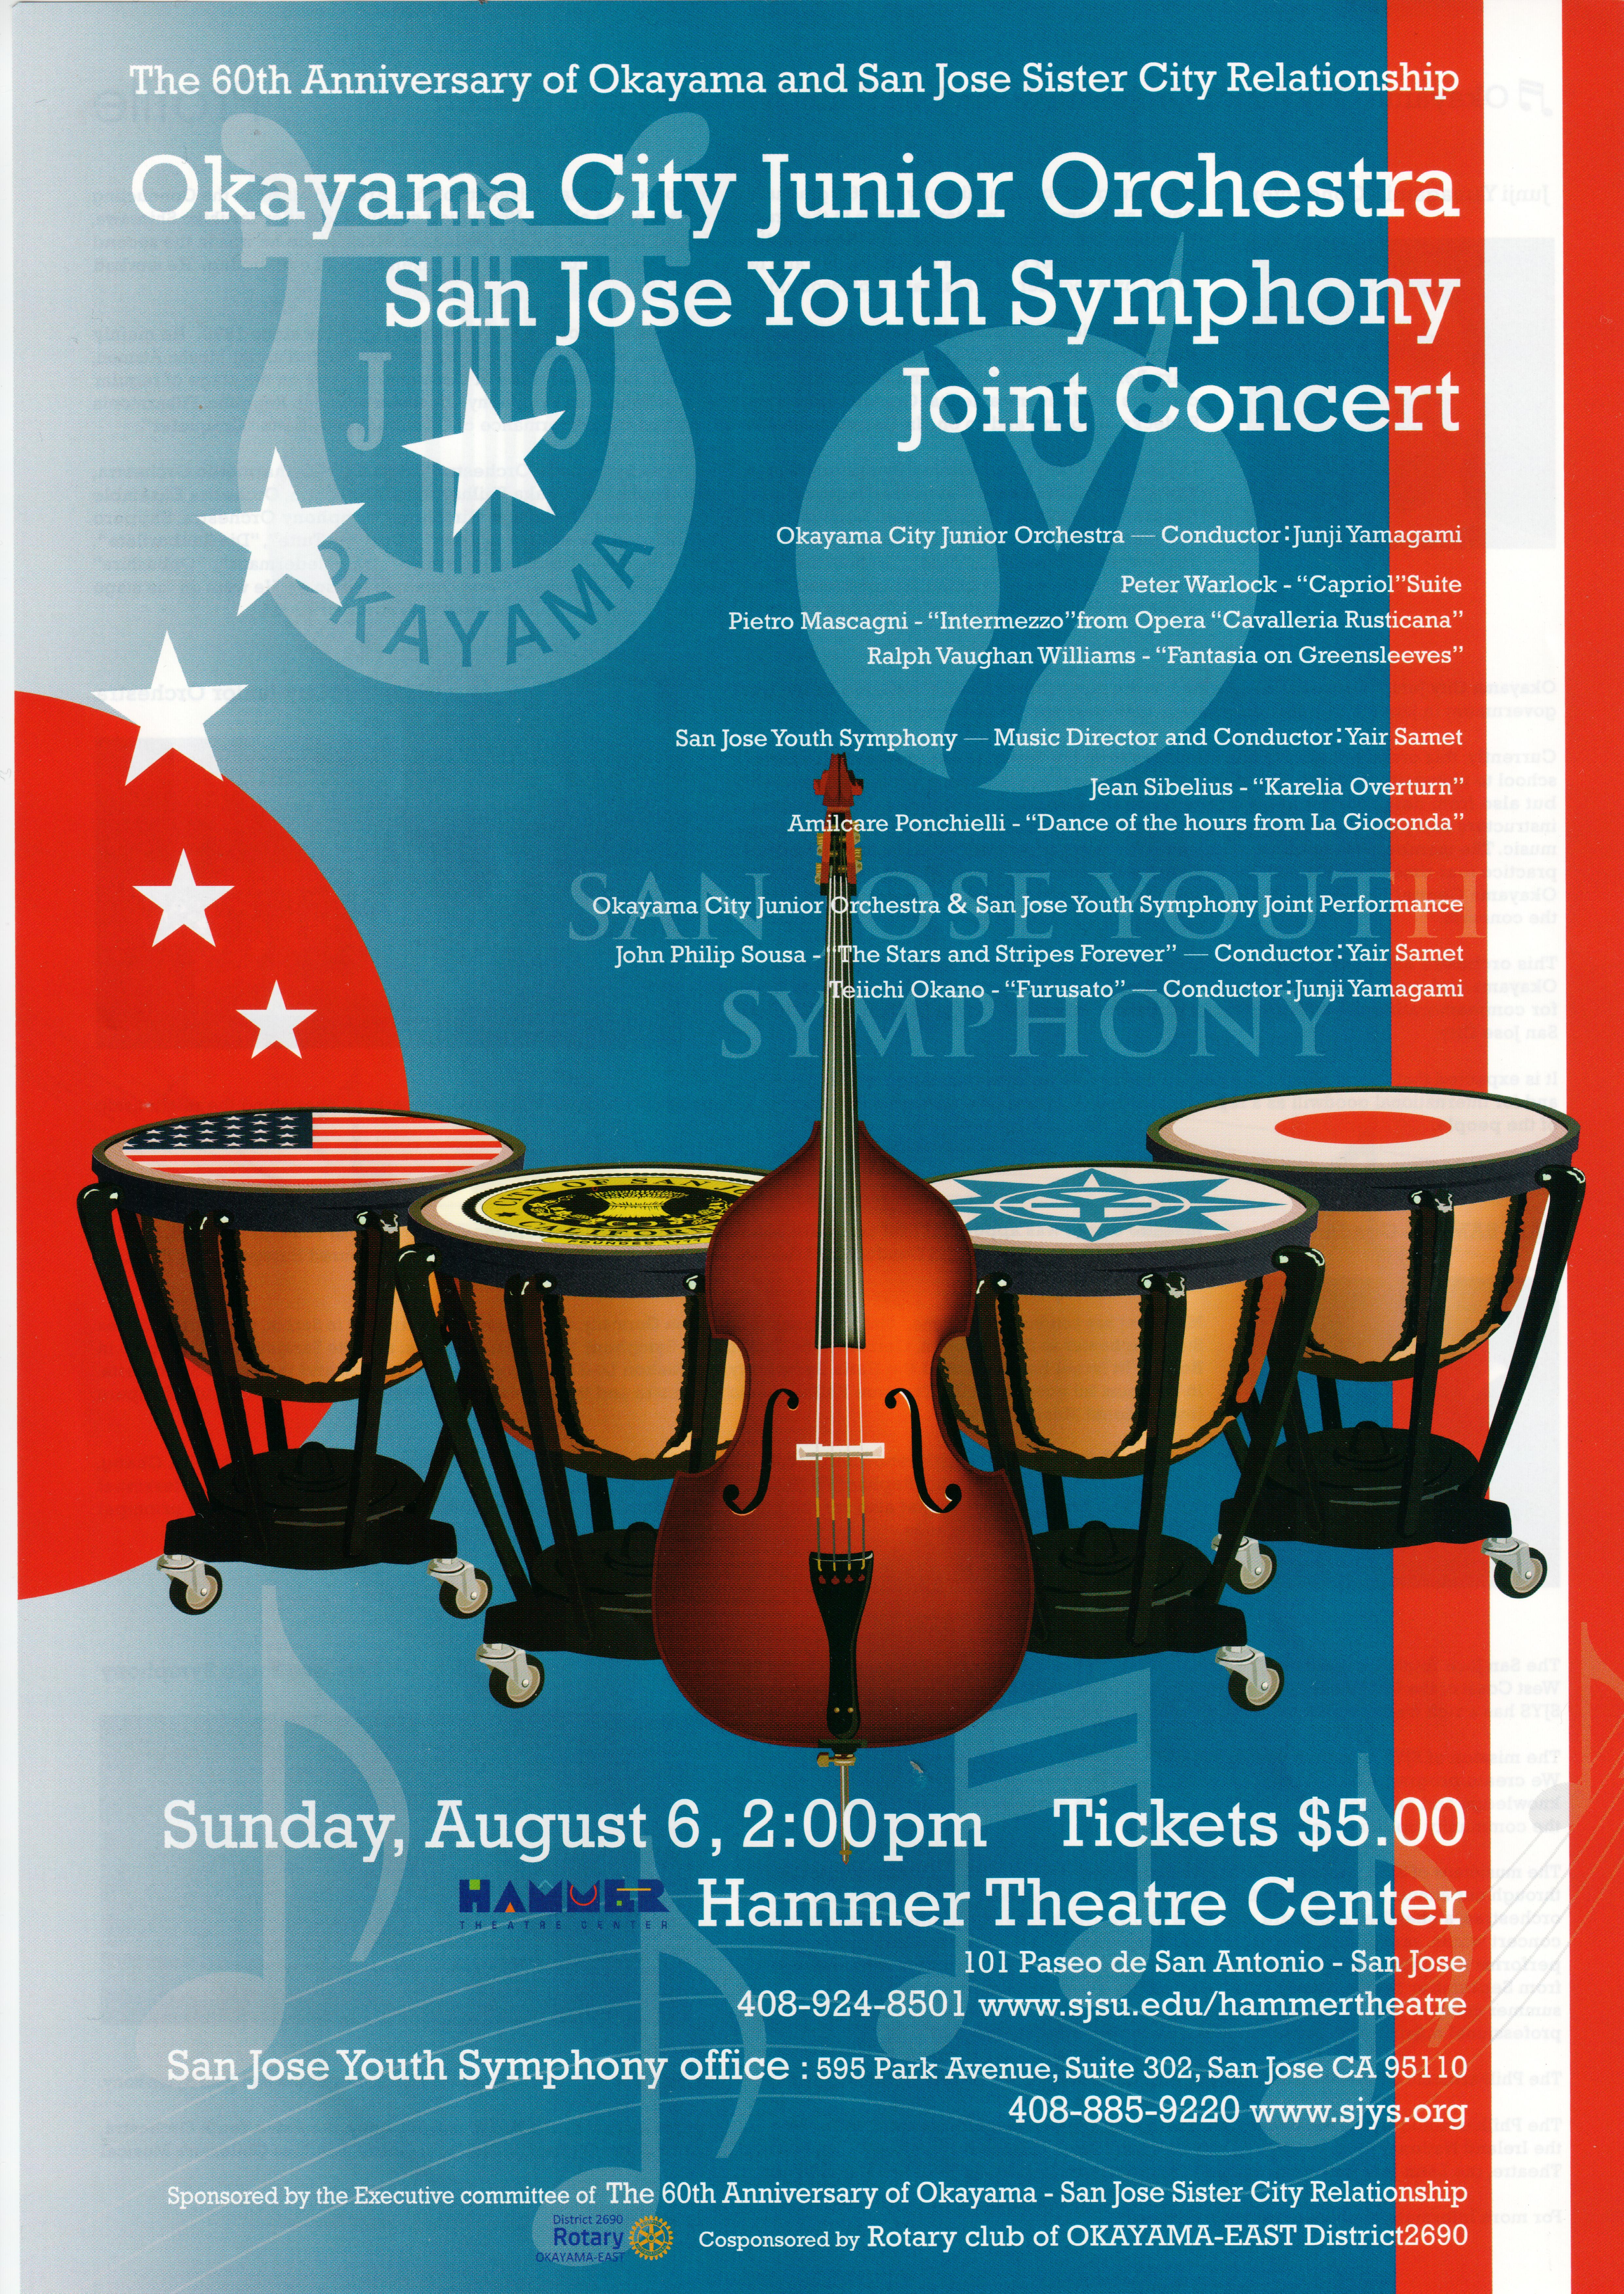 SJYS OYO joint concert 8-06-17